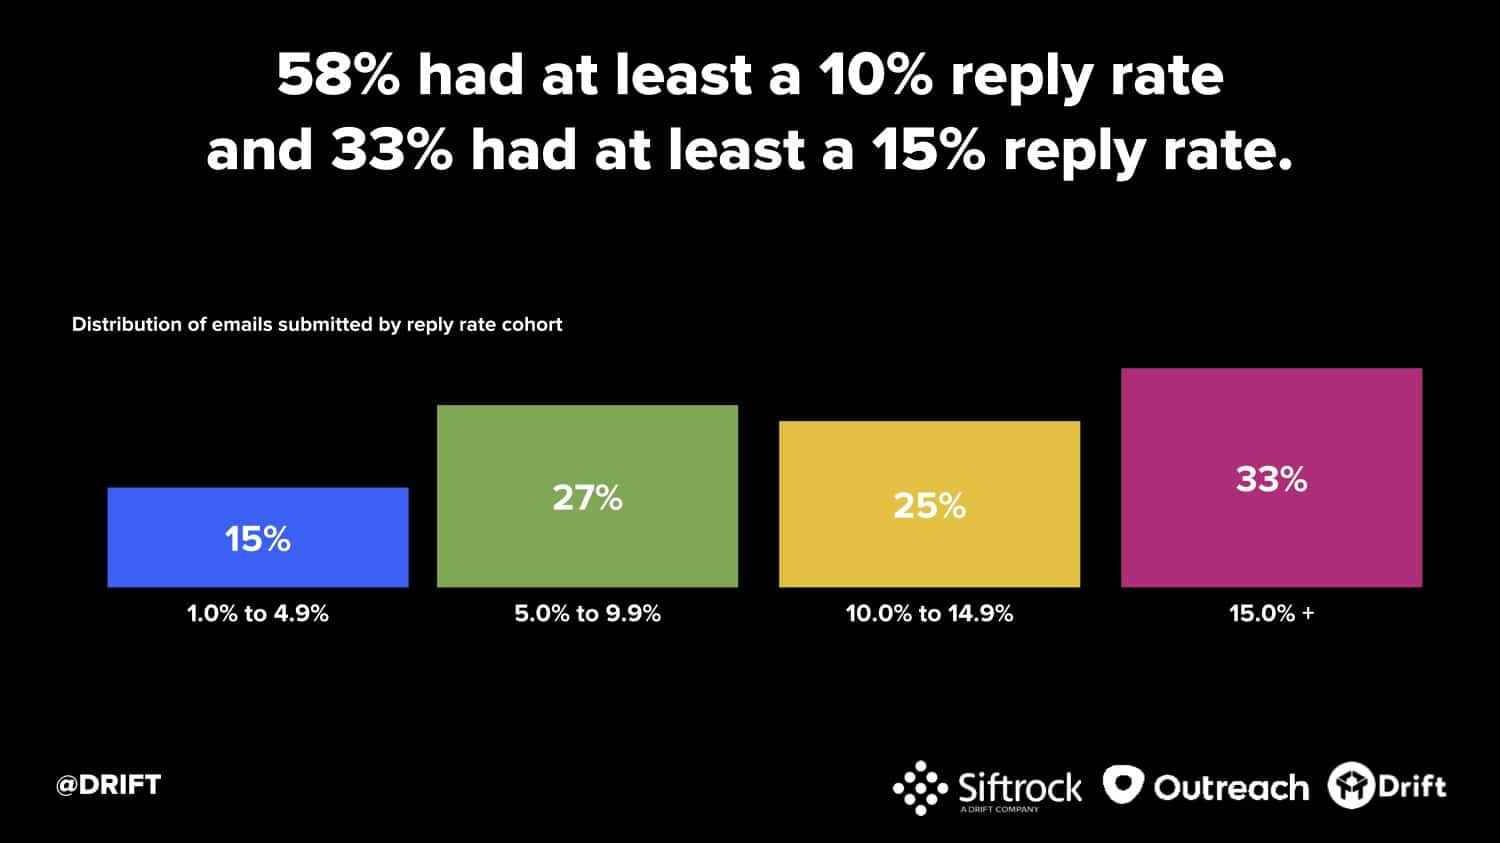 Drift cold email study reply rate cohorts